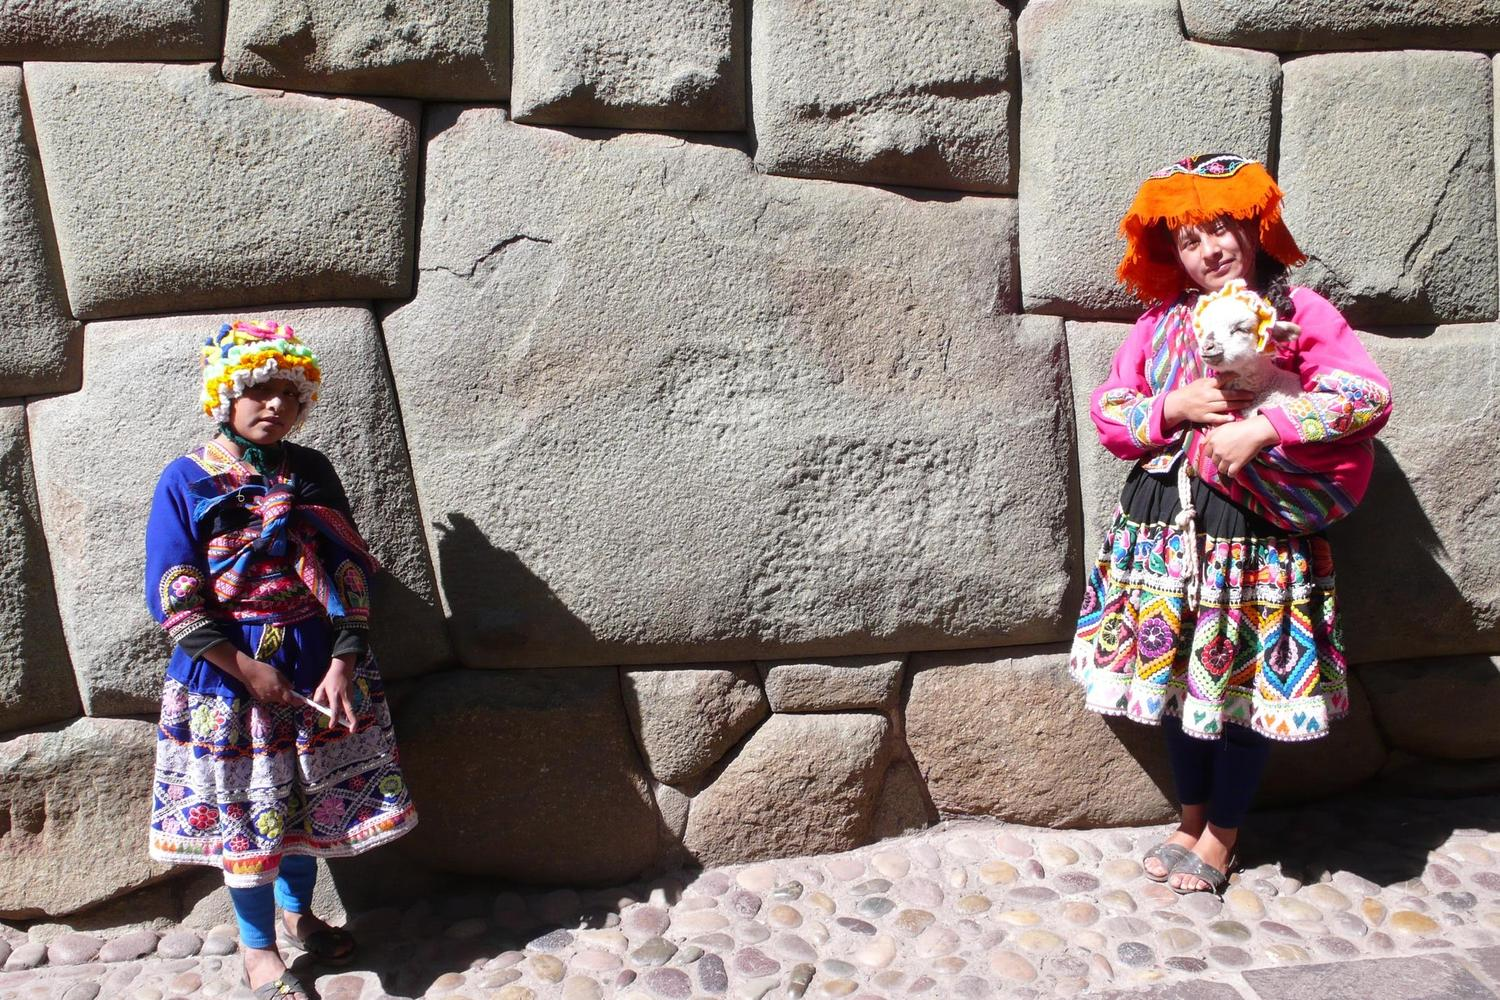 Traditional dress and incredible Incan stonemasonry in Cusco